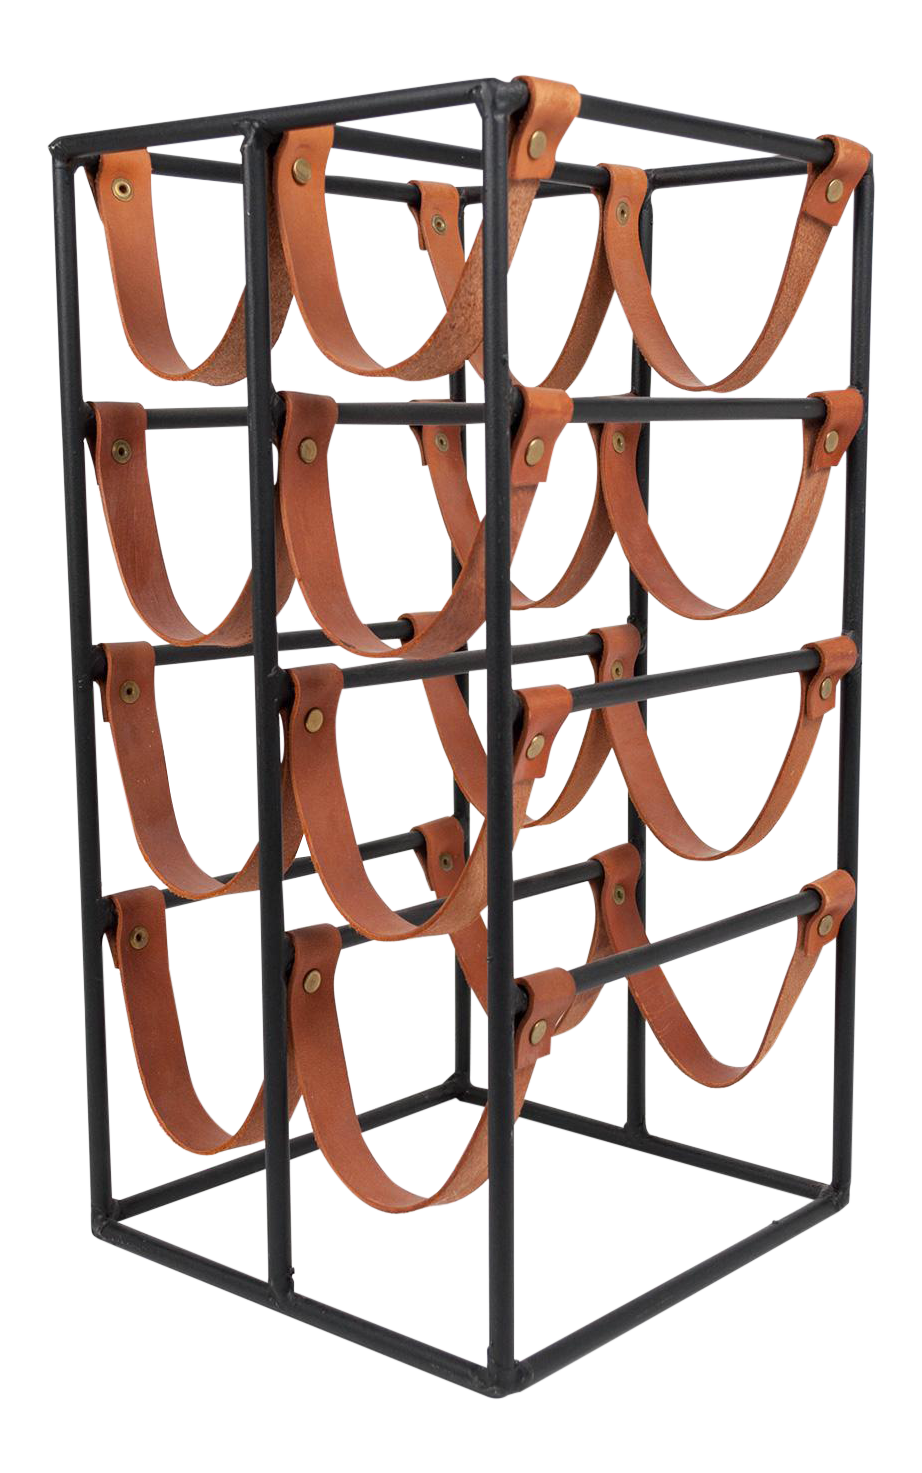 Iron clipart book rack. Arthur umanoff leather bottle